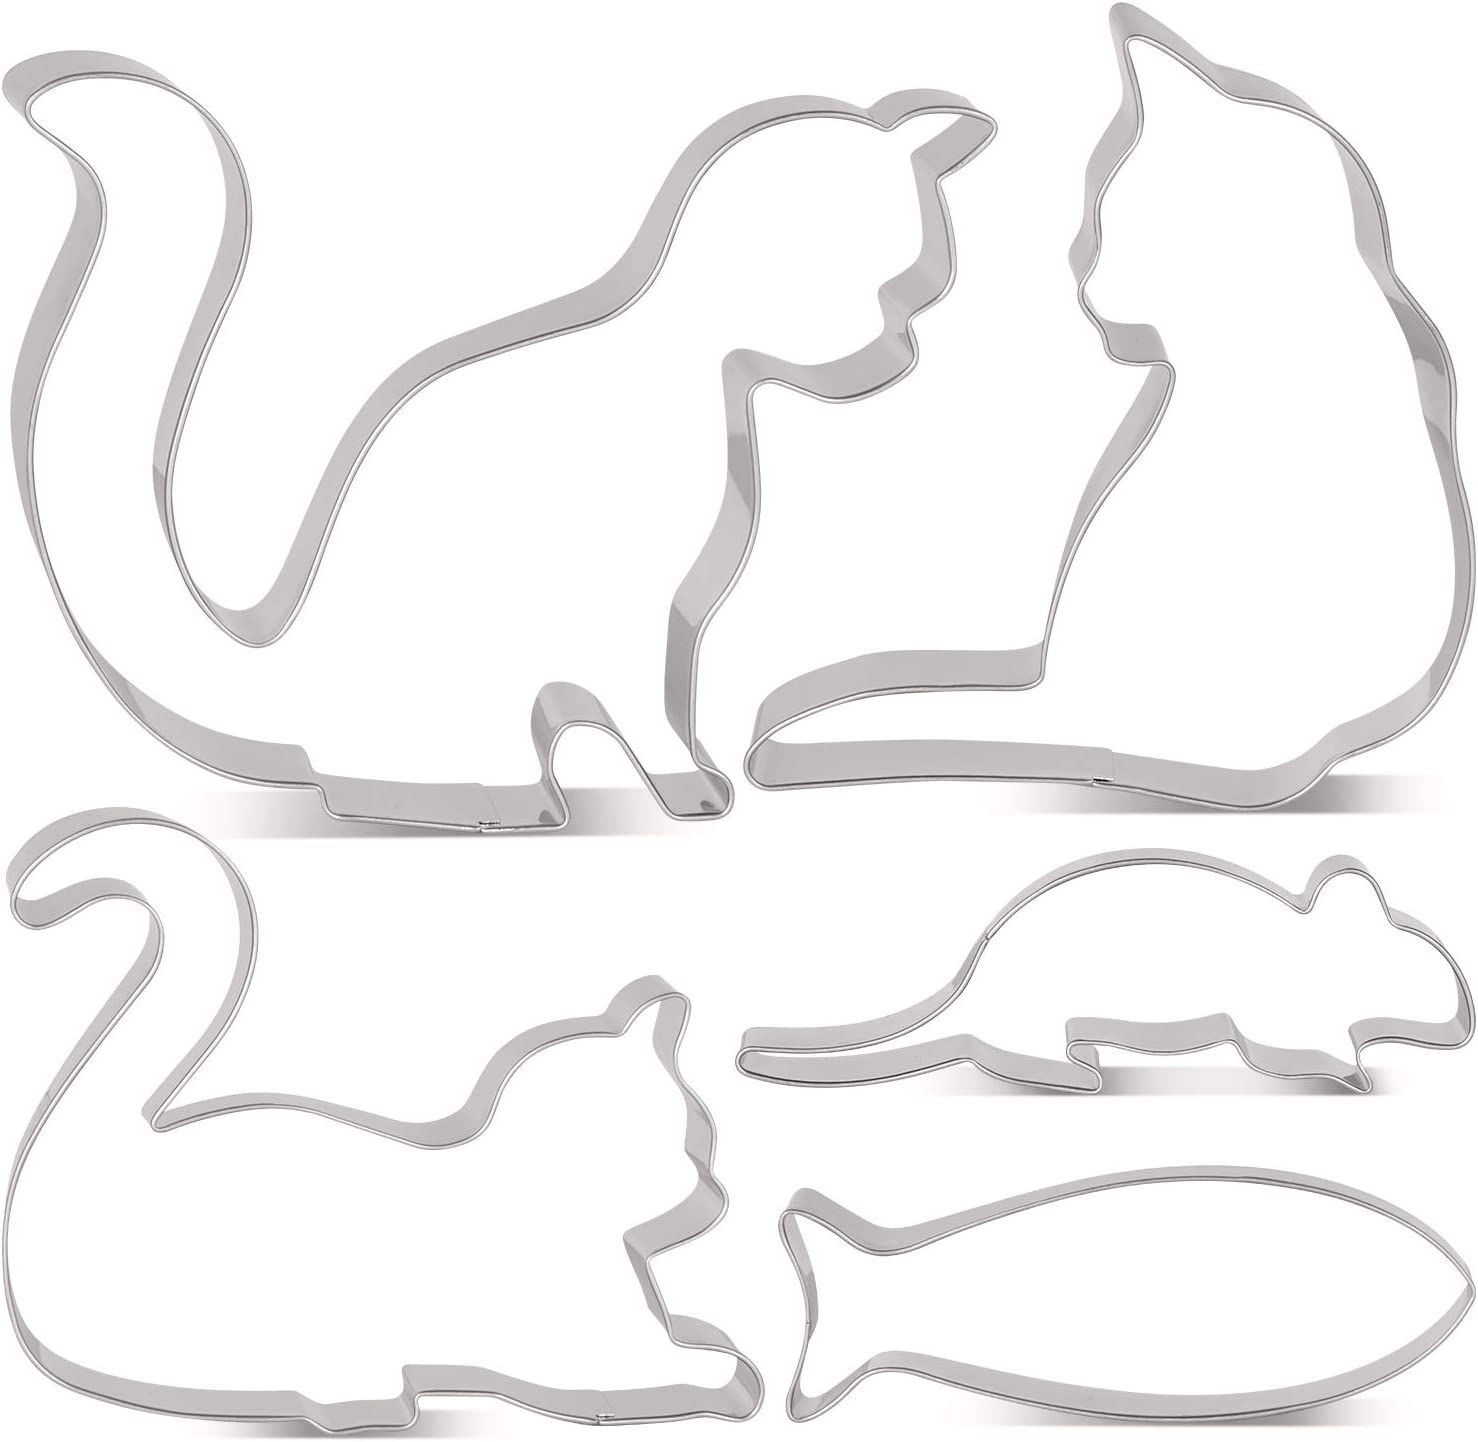 LILIAO Cat Cookie Cutter Set Challenge the lowest price Long Beach Mall Sitting Piece Curled 5 -